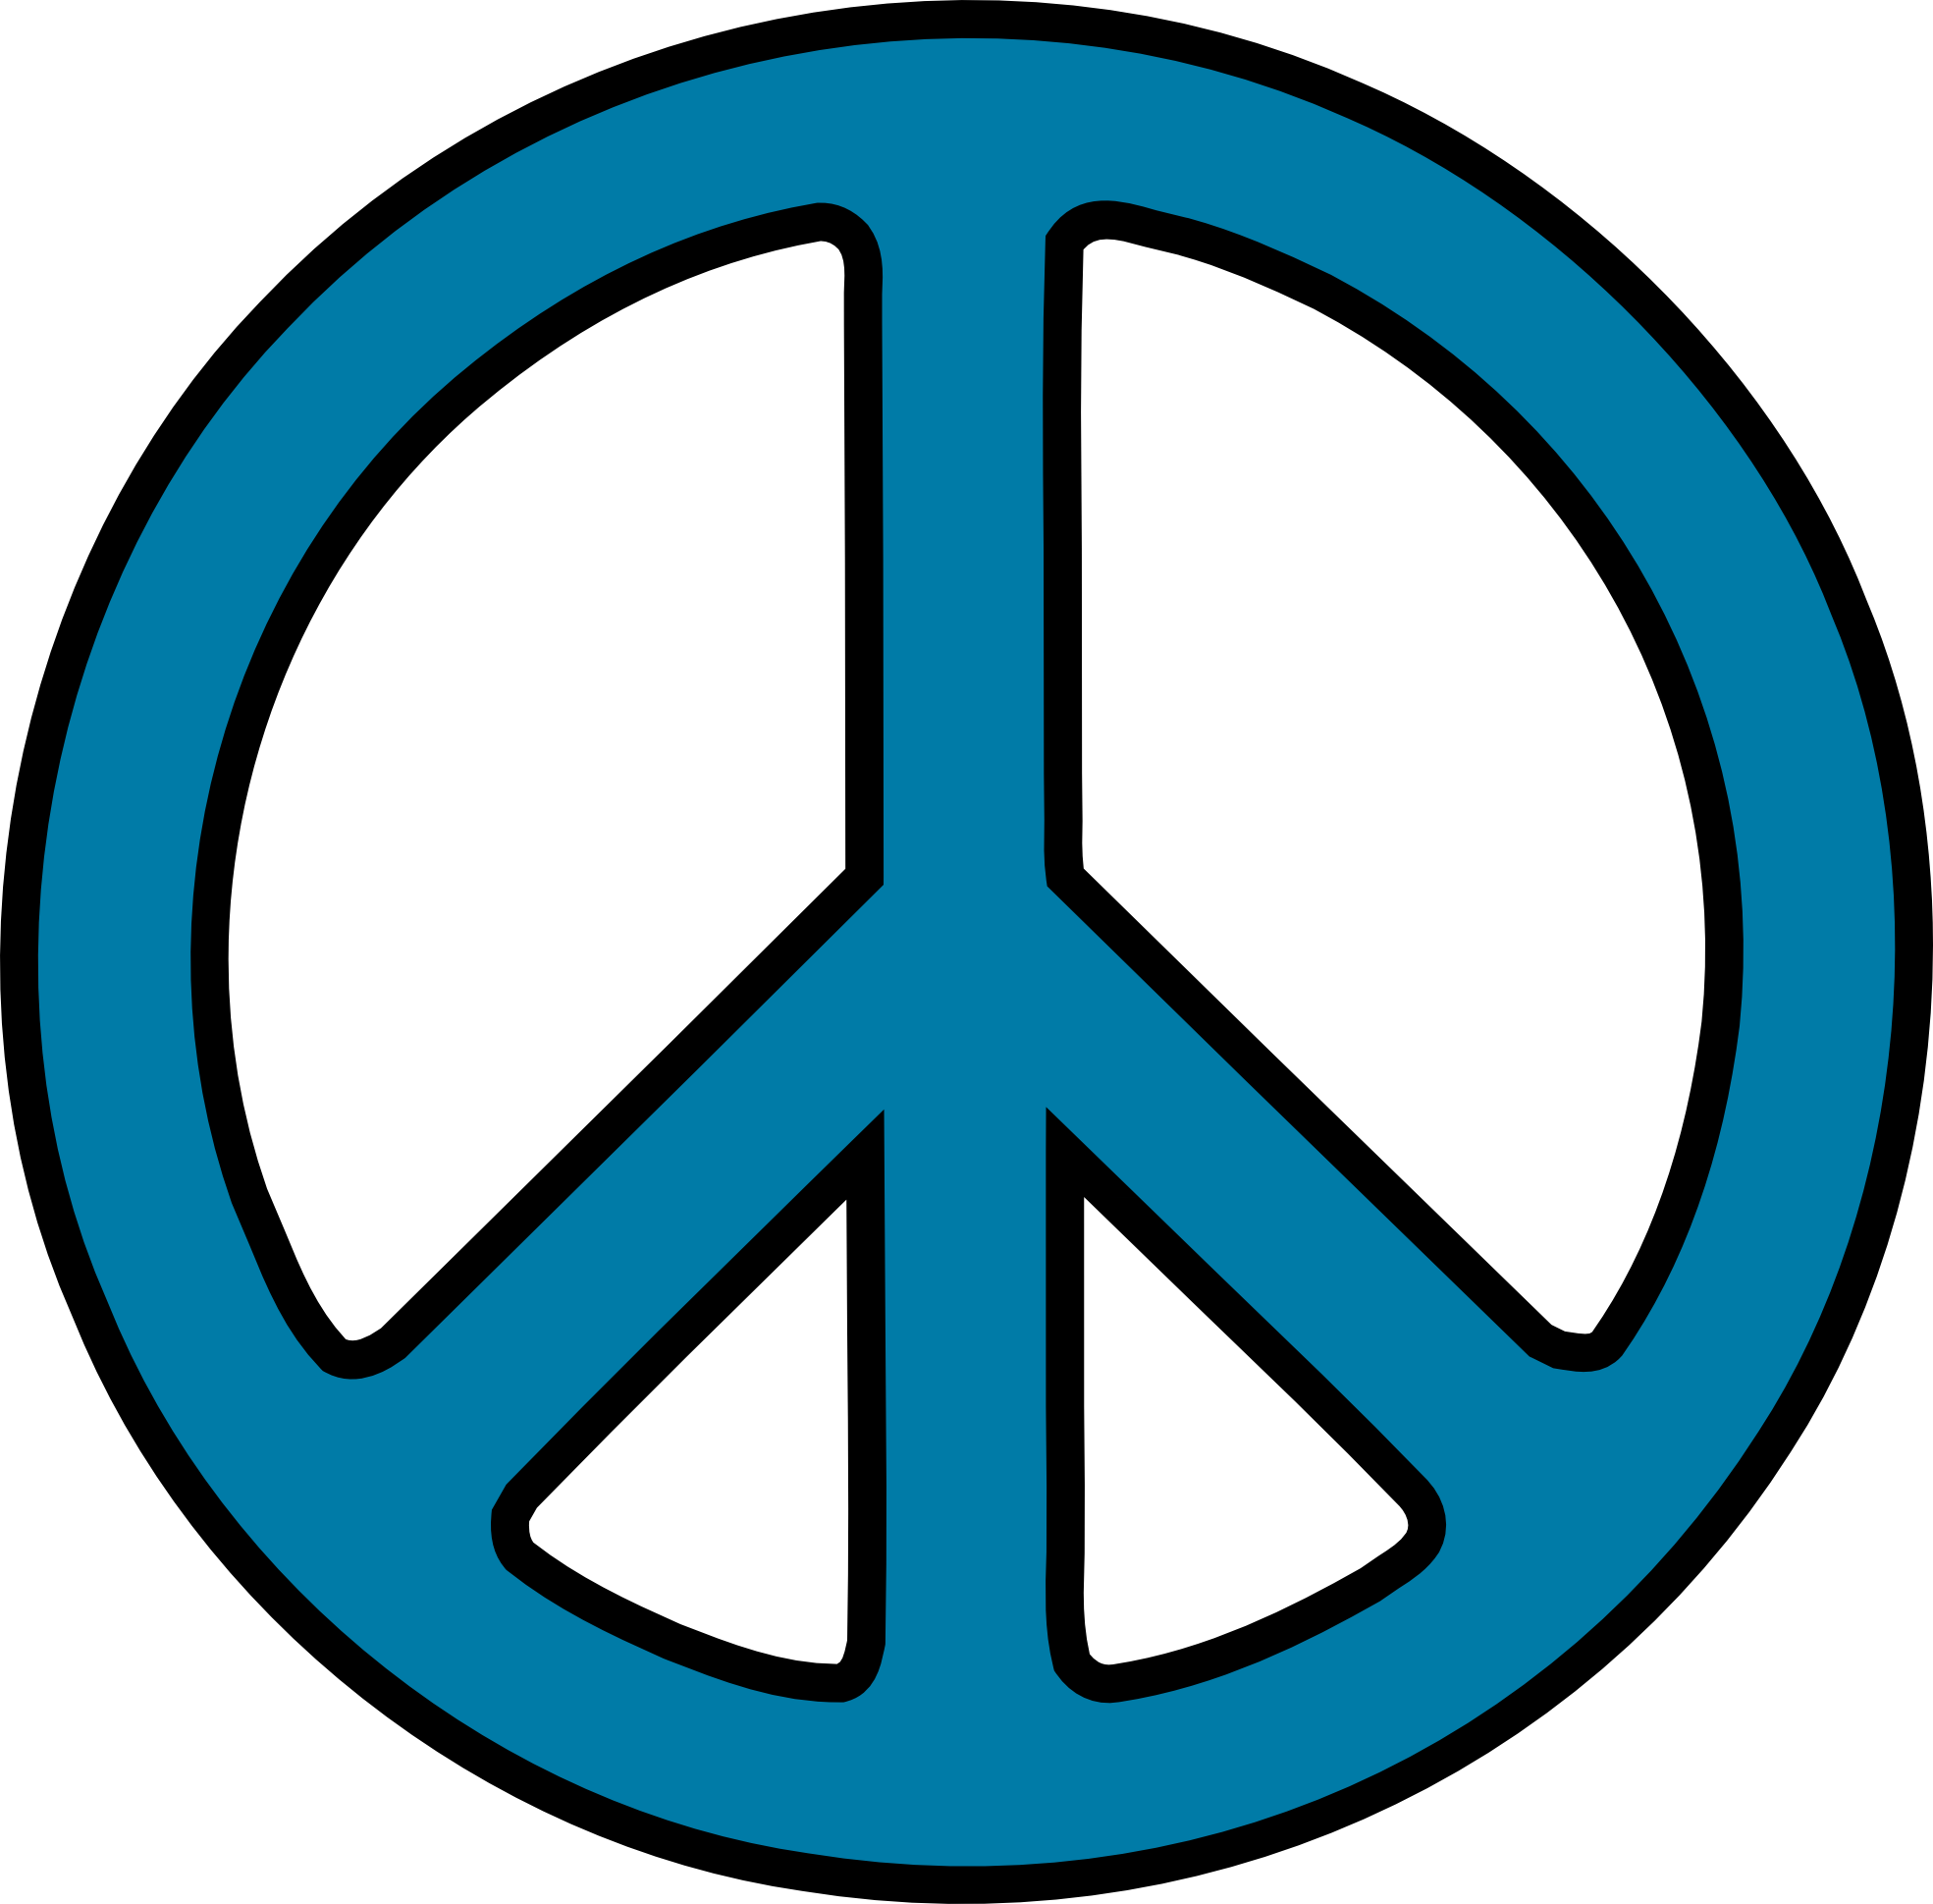 world peace clipart at getdrawings com free for personal use world rh getdrawings com sign clipart free sign clip art images